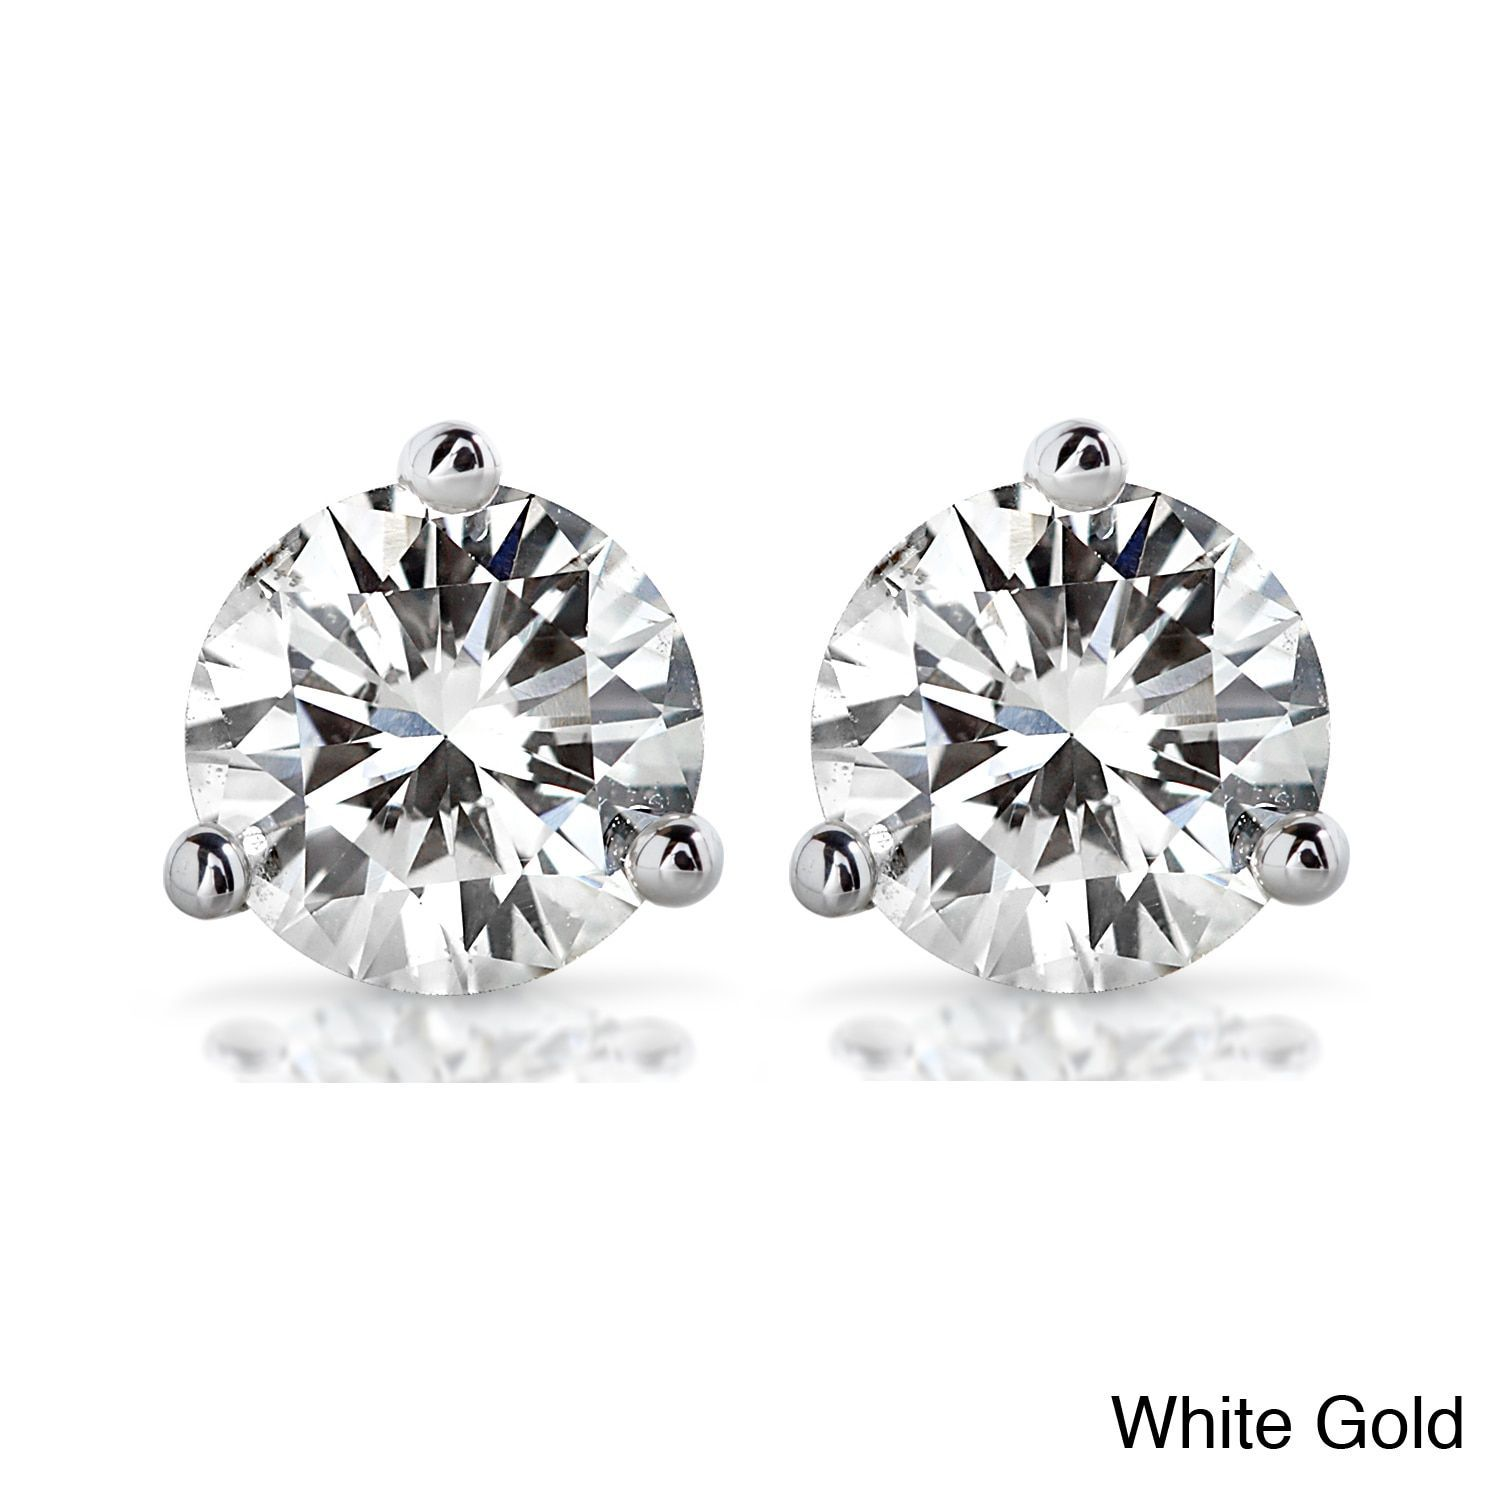 tb studs set moissanite gold carat dsc stud ct twt total in weight white earrings brilliant